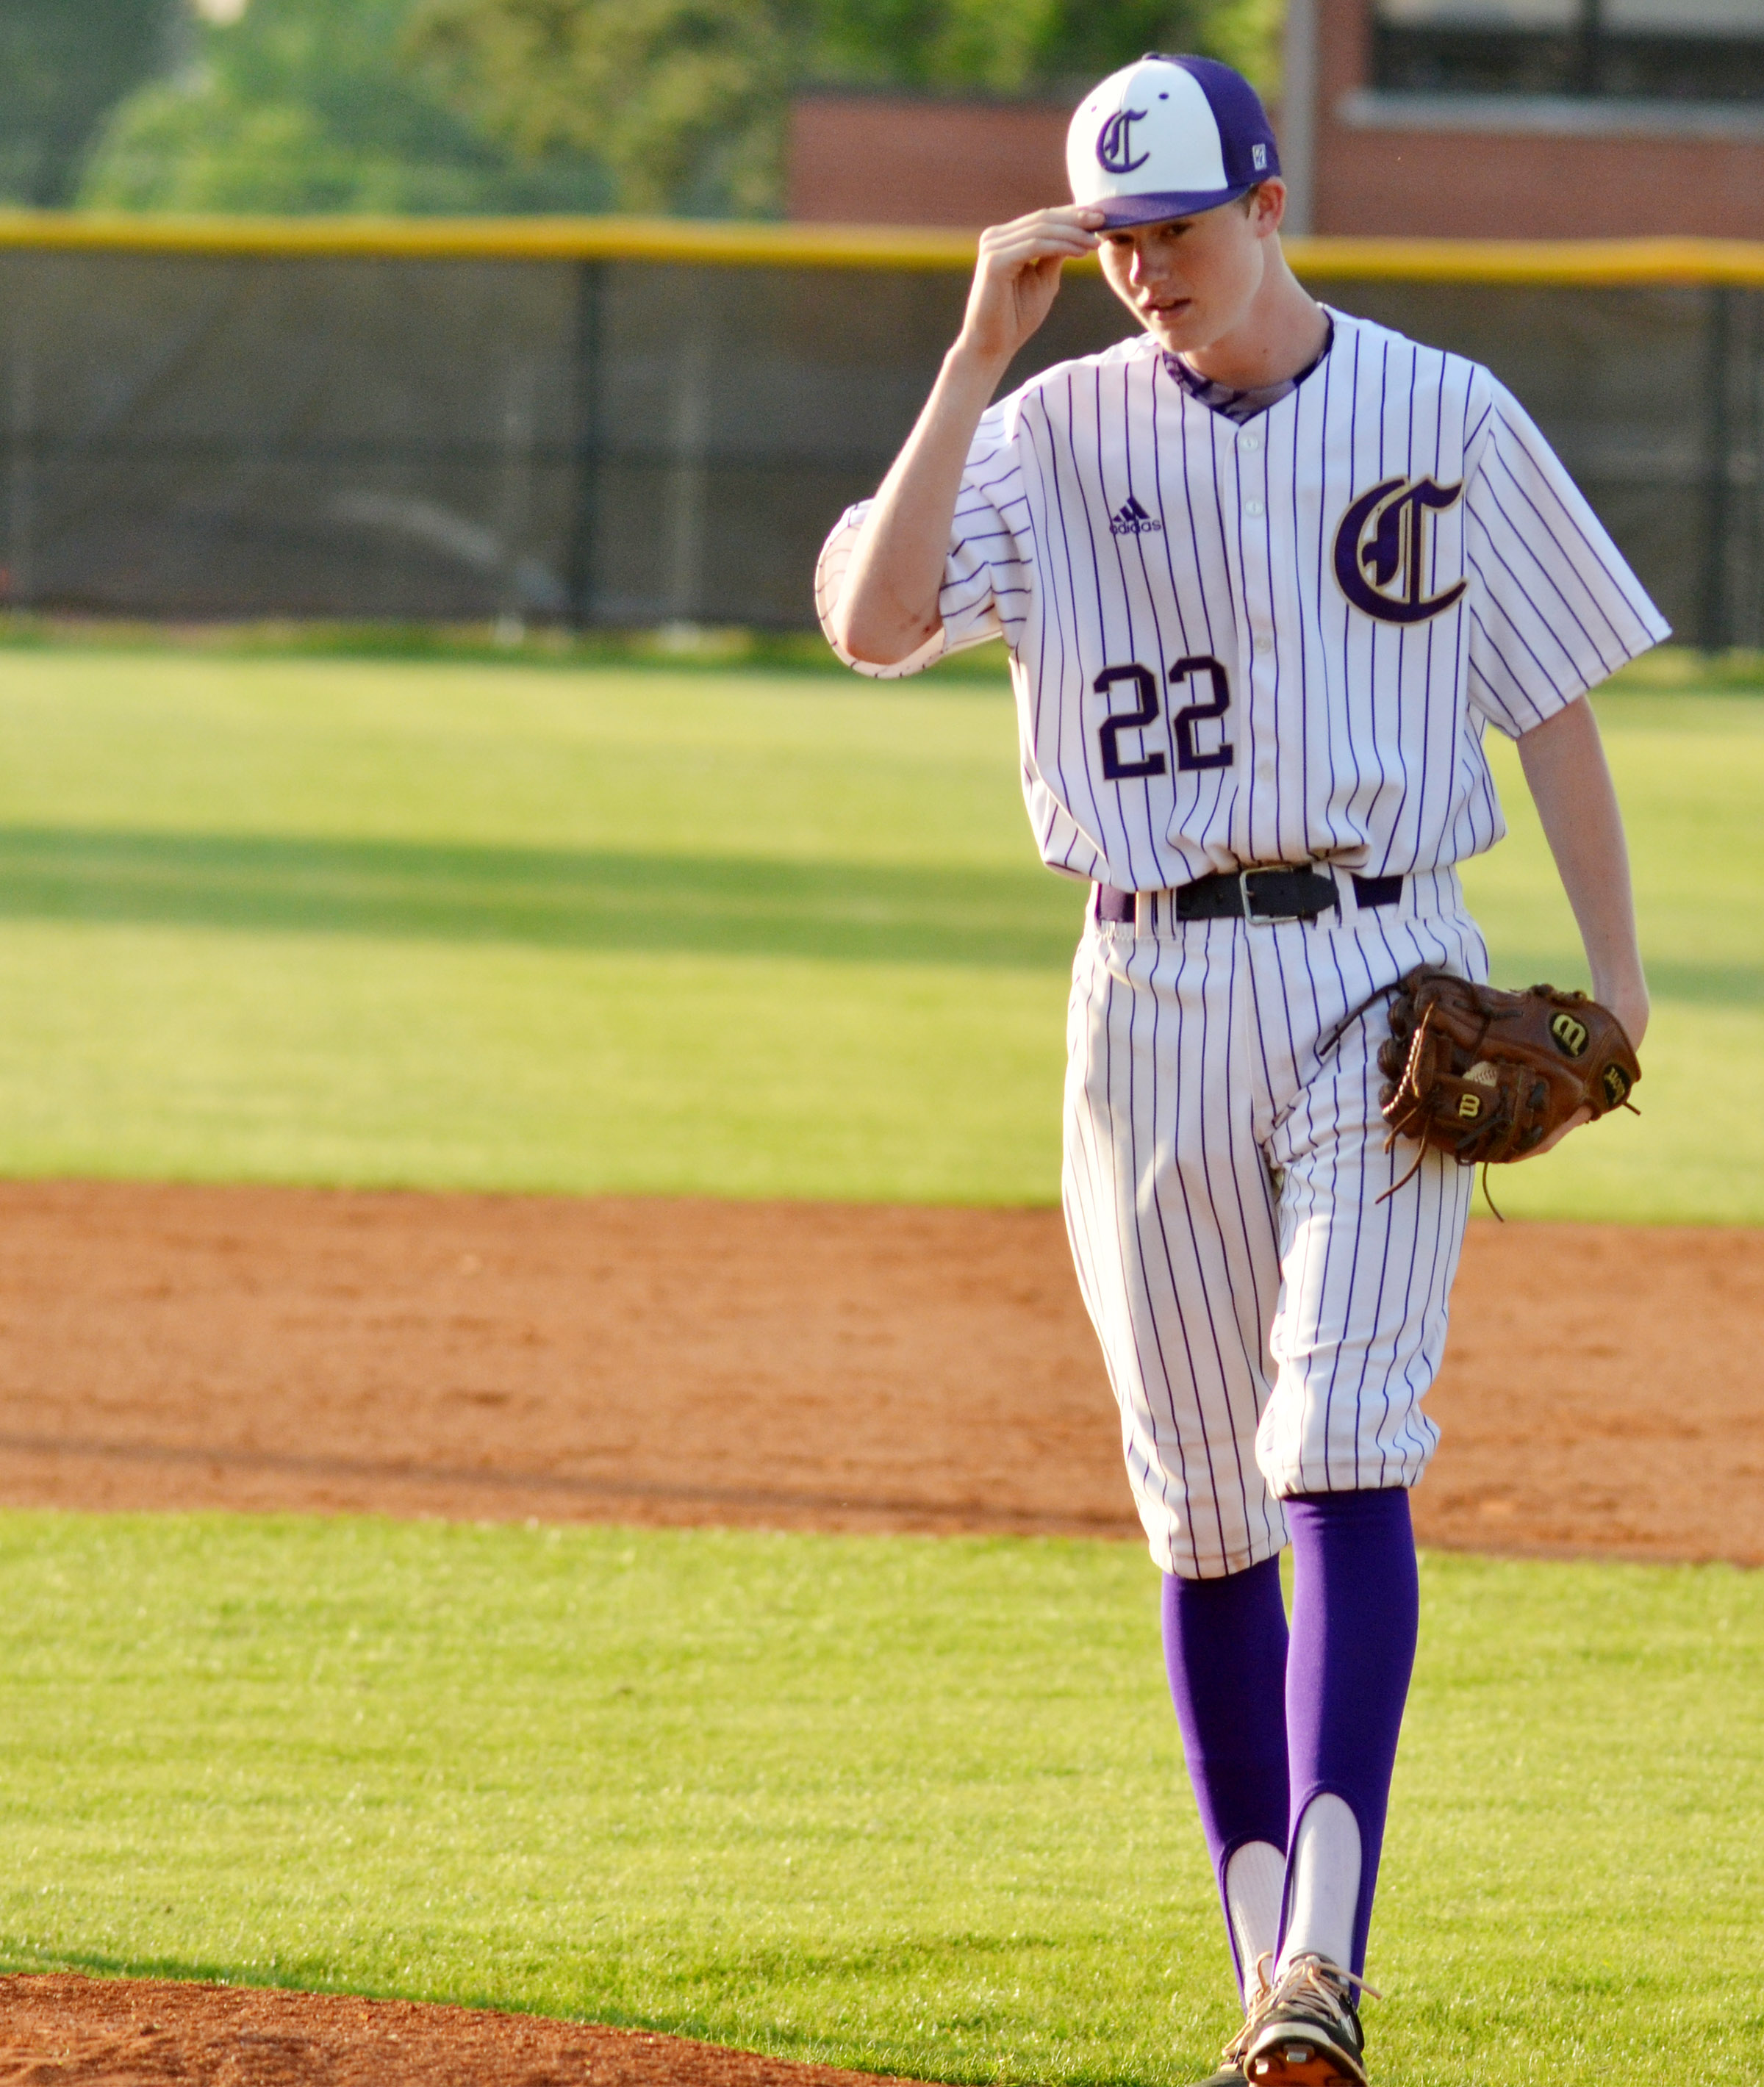 Campbellsville Middle School eighth-grader Tristin Faulkner gets ready to pitch.